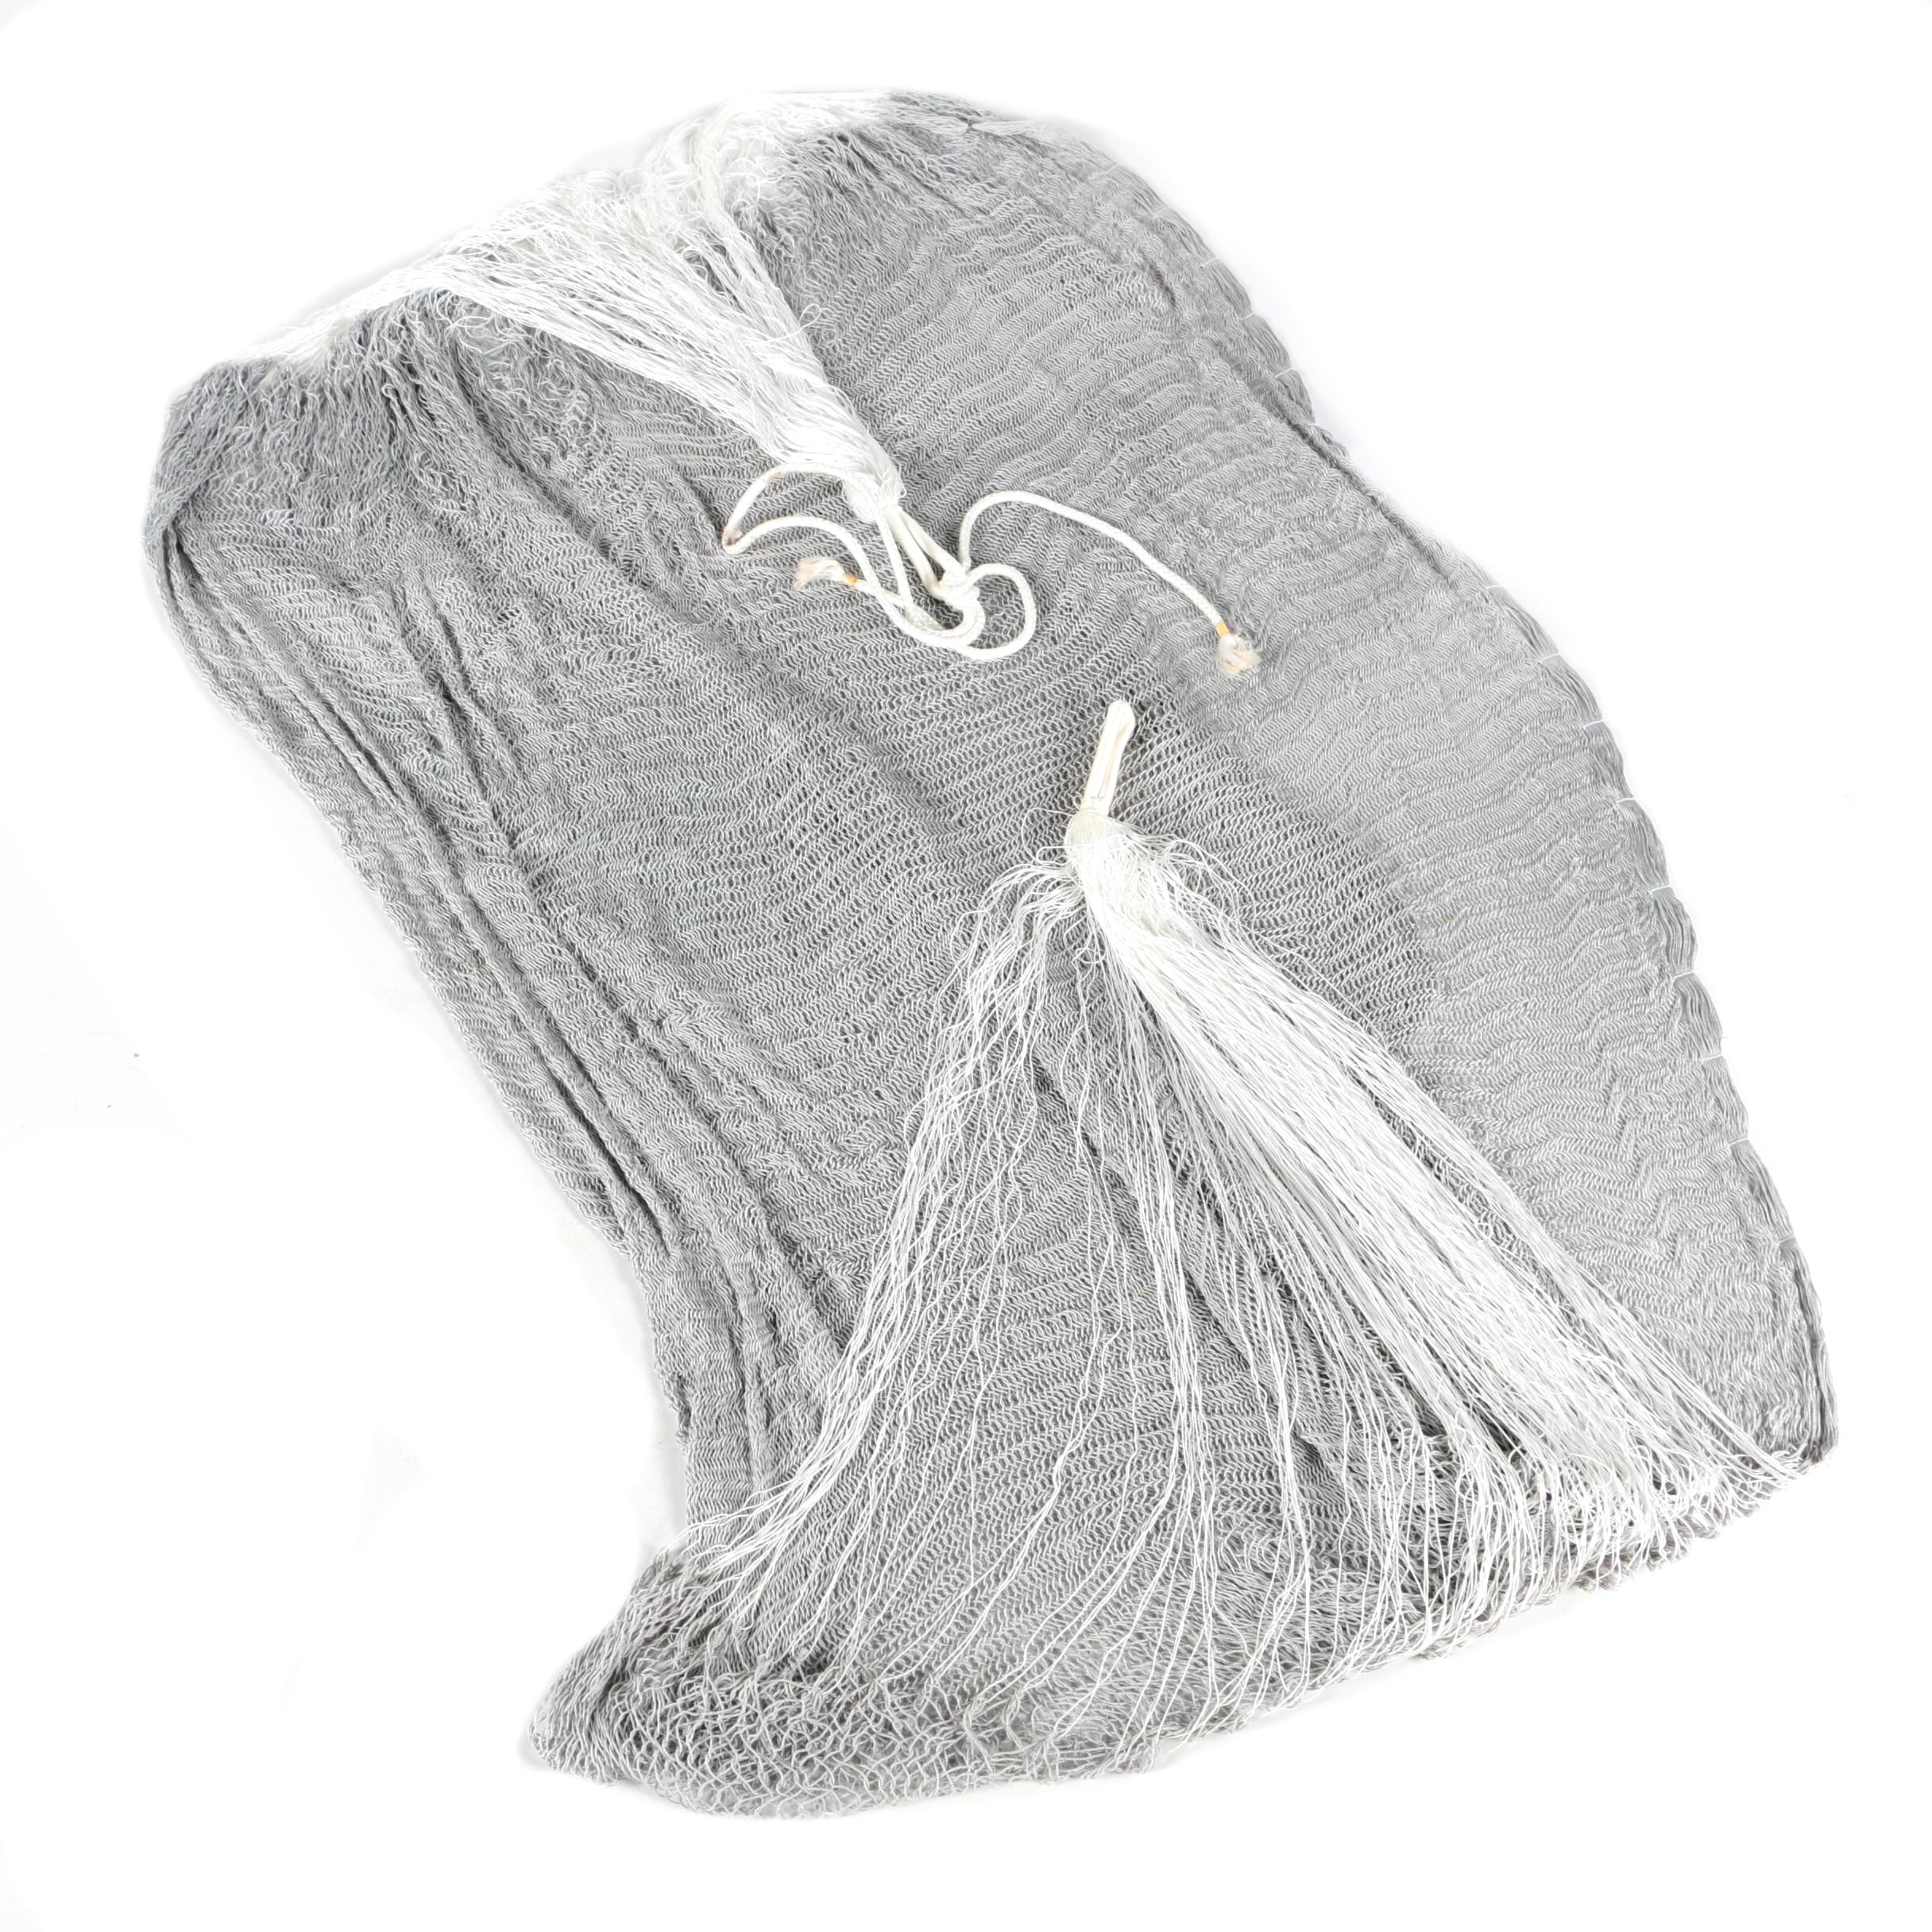 Gray Fabric Hammock with White Rope